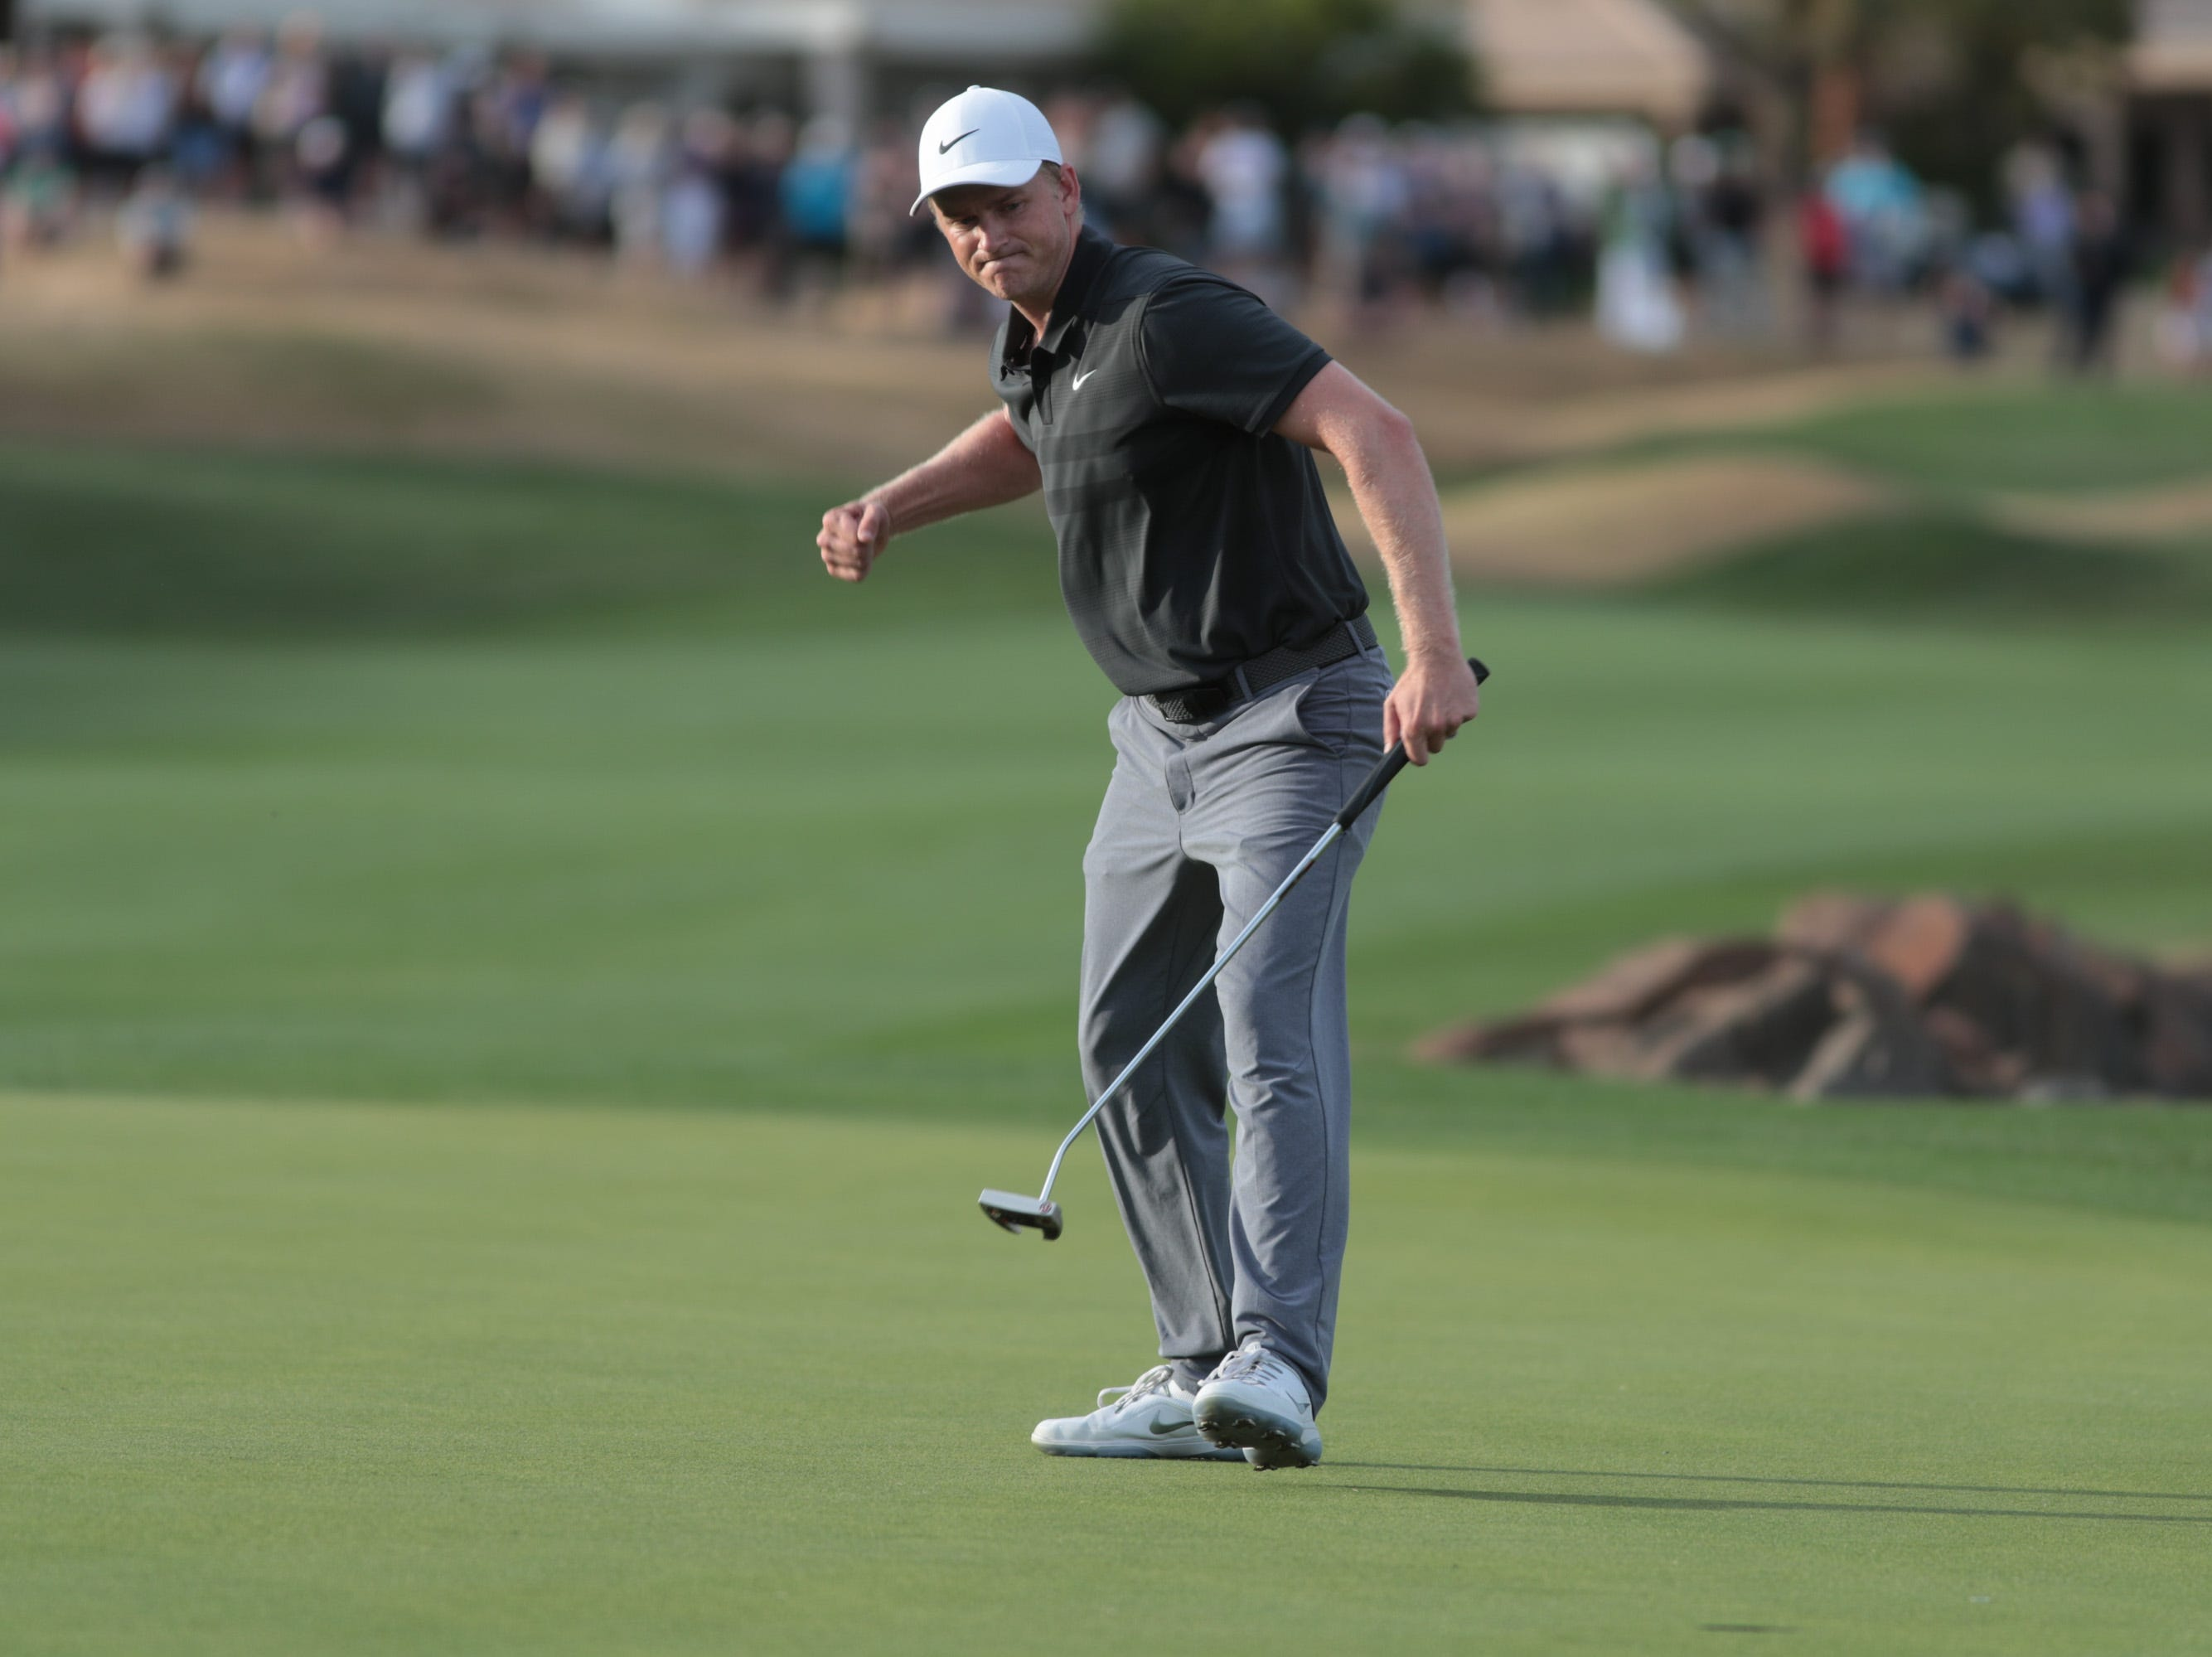 Adam Long reacts to making a birdie putt on the 18th hole of the 2019 Desert Classic, Sunday, January 20, 2019.